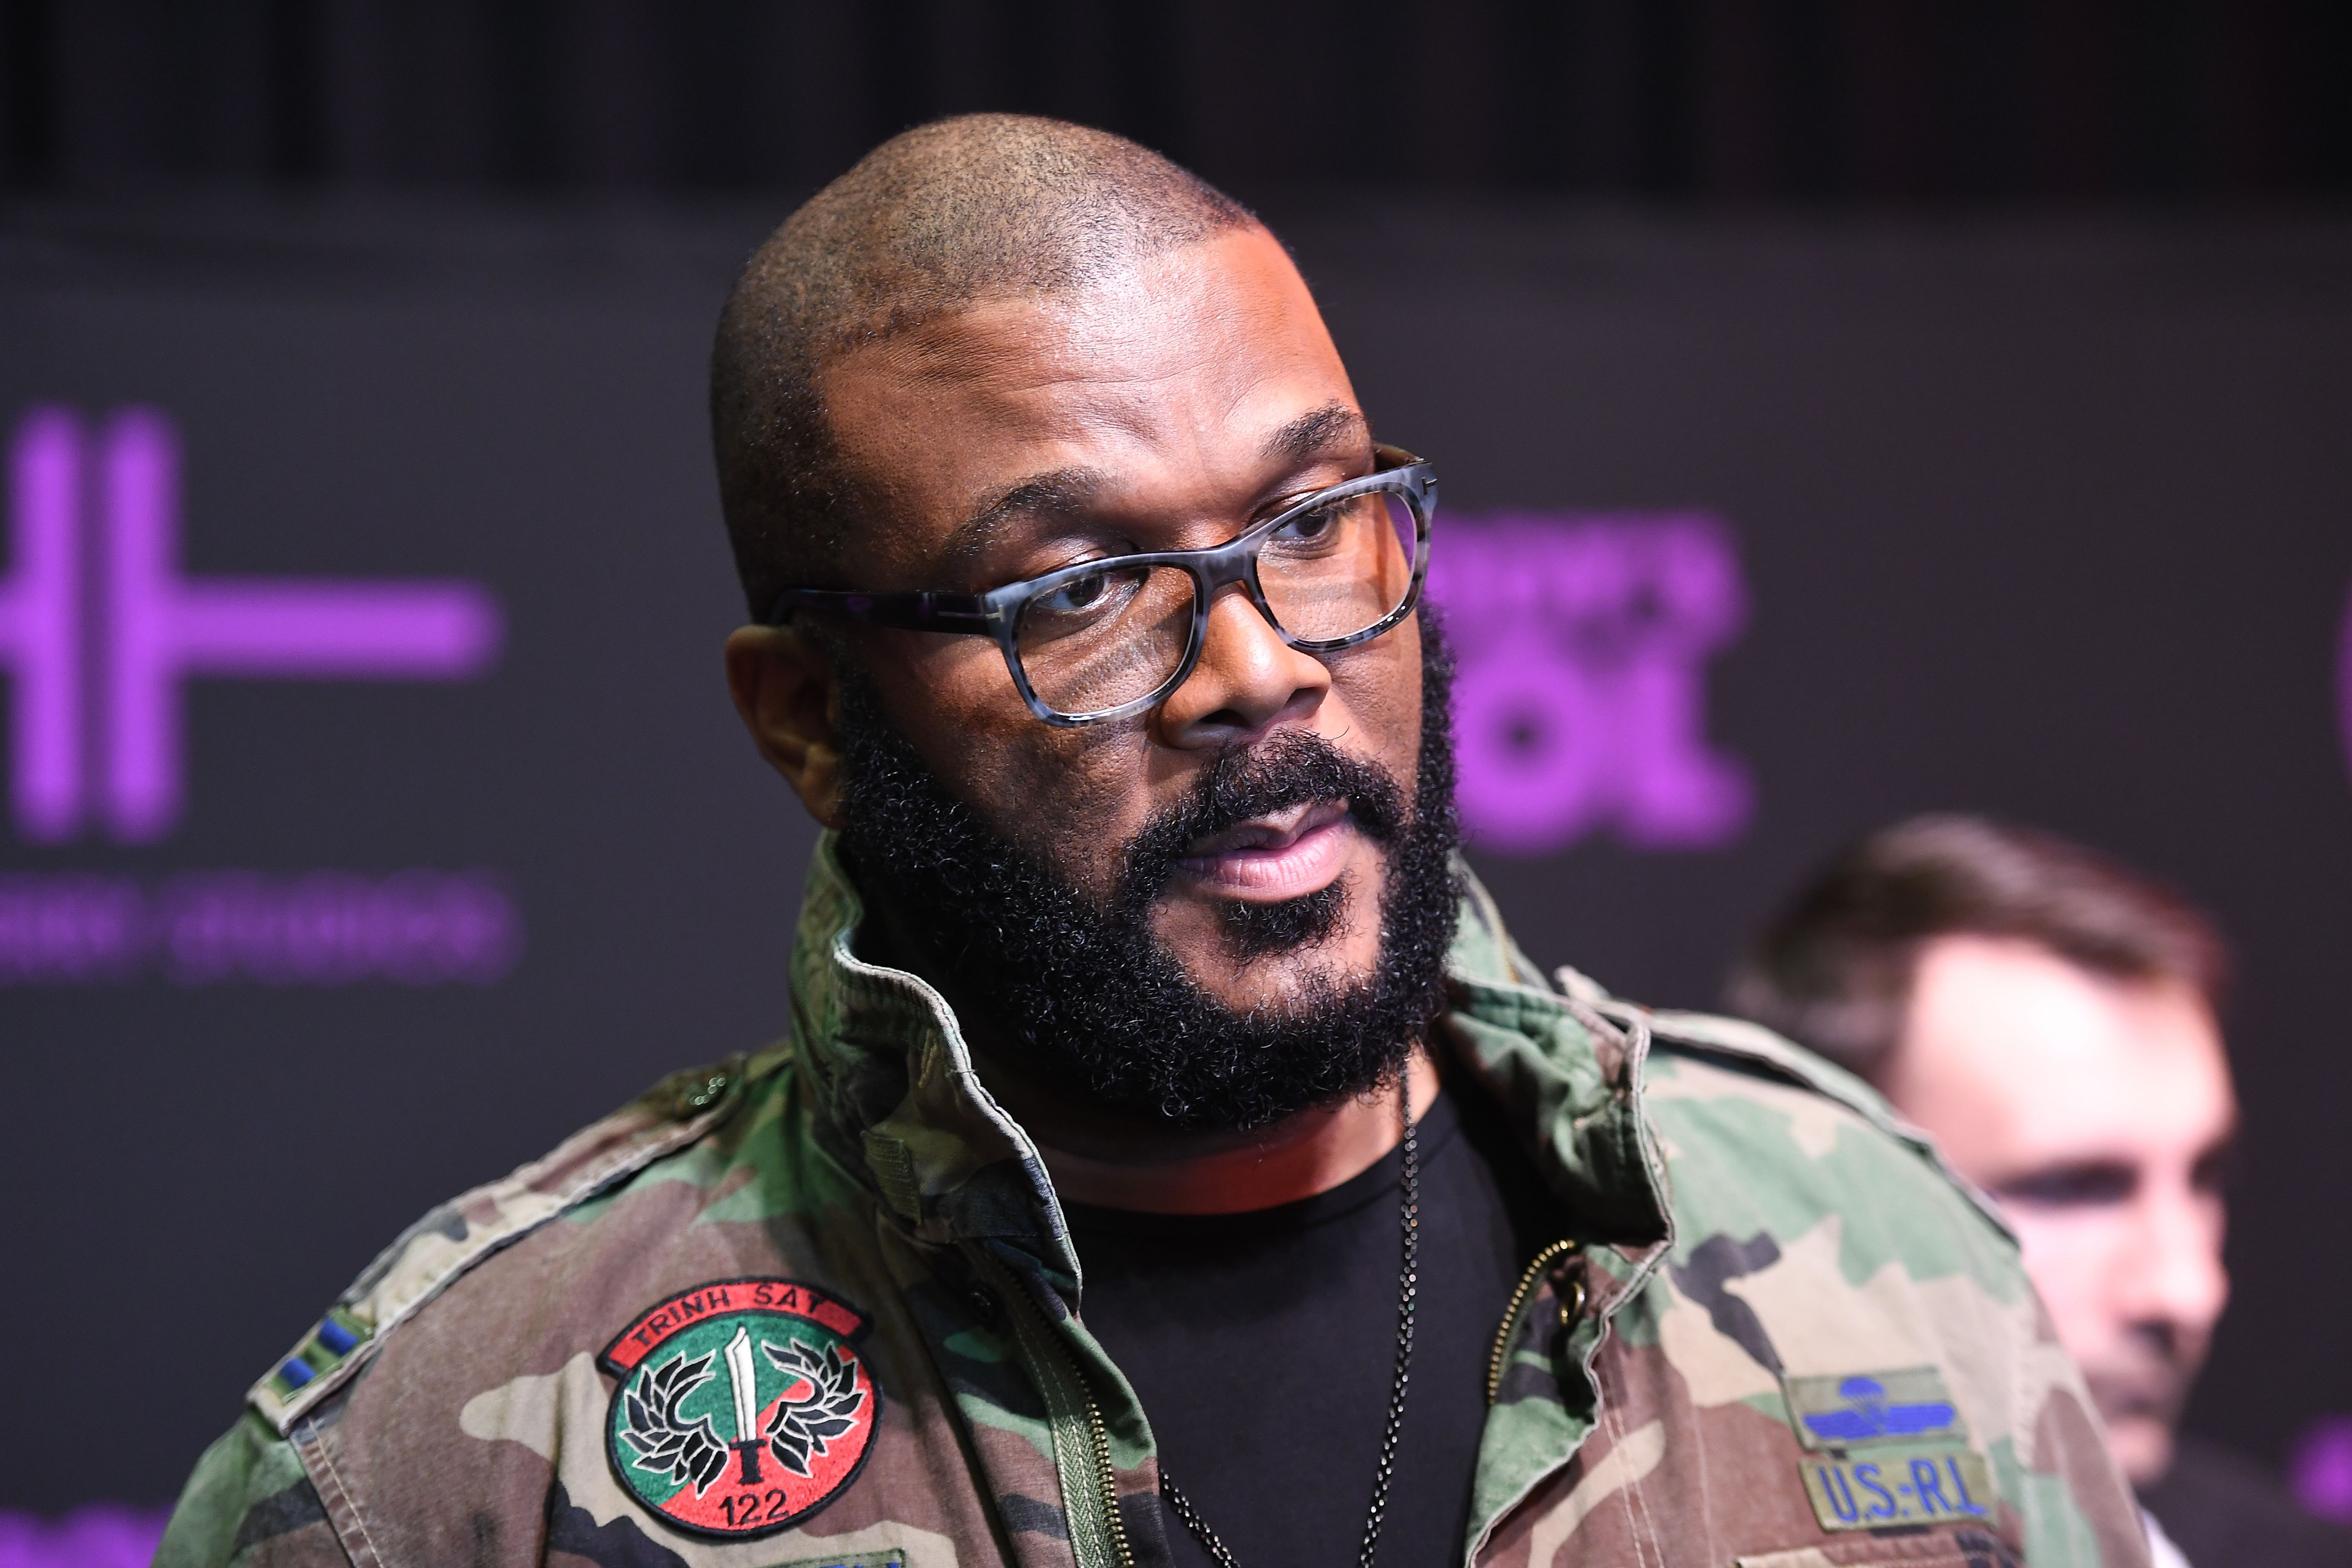 """Actor and producer Tyler Perry attends the """"Nobody's Fool"""" Atlanta screening at Regal Atlantic Station in November 2018. 